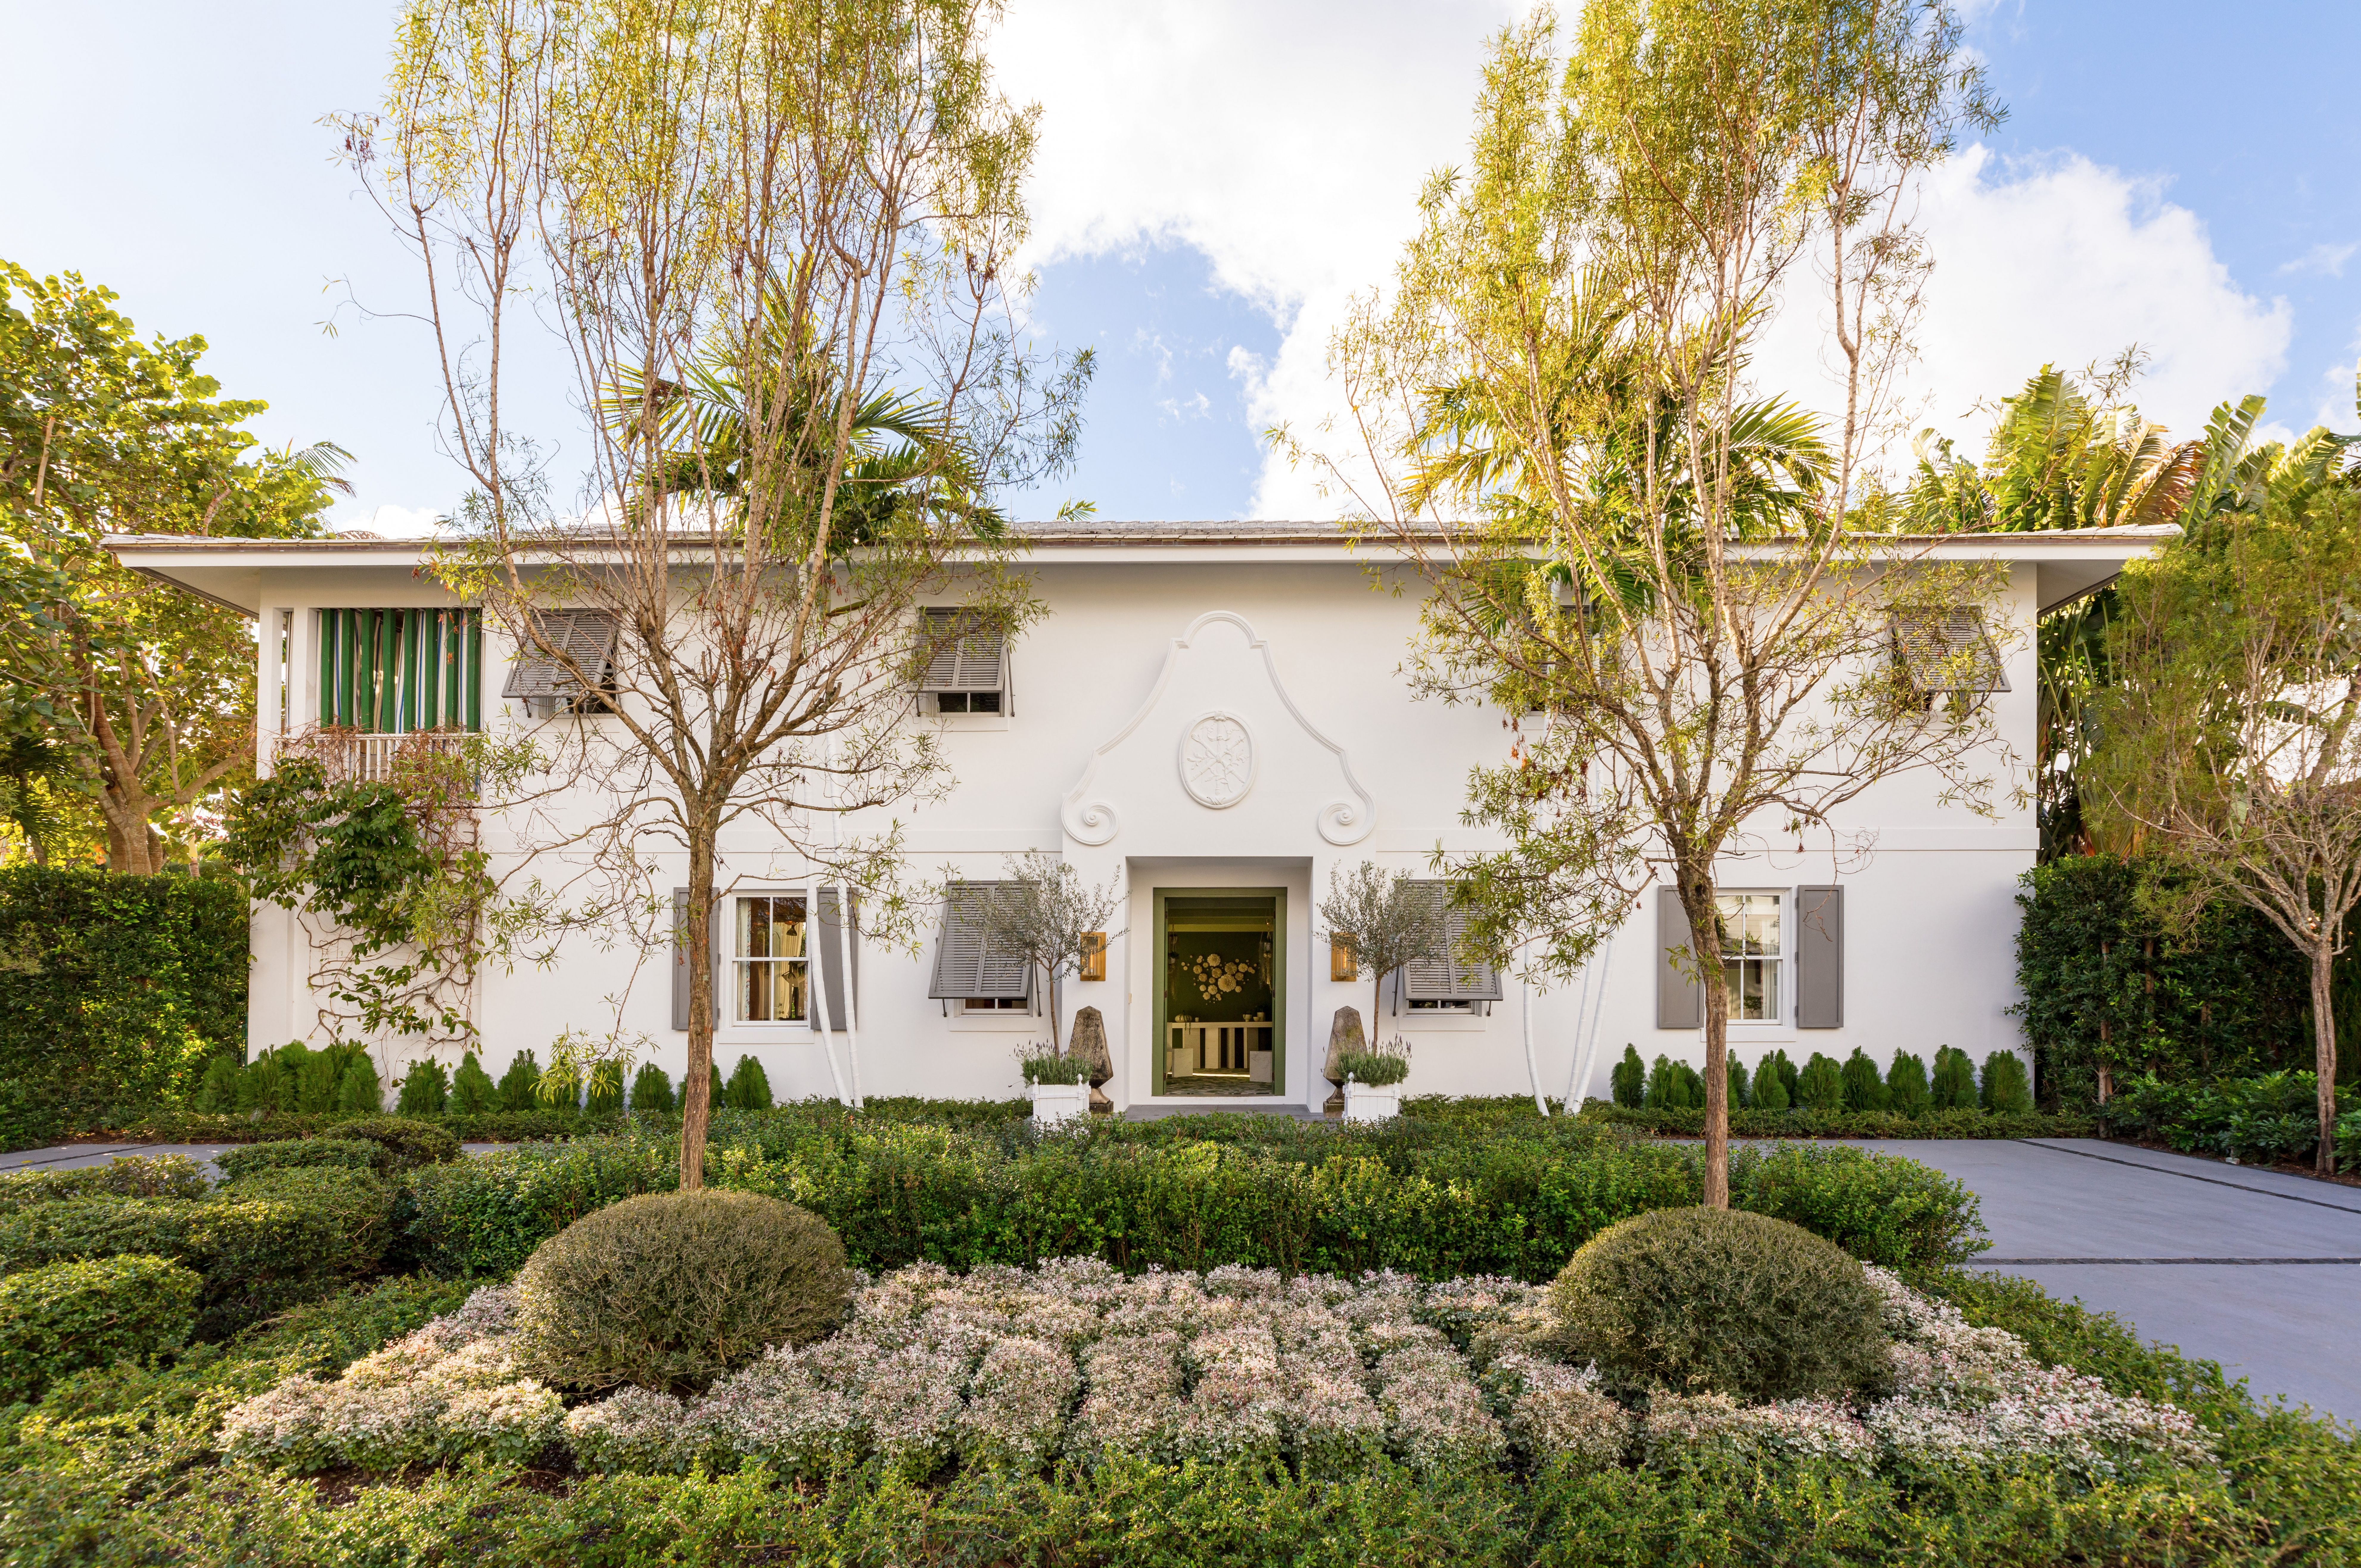 Tour the Kips Bay Show House Palm Beach | Architectural Digest